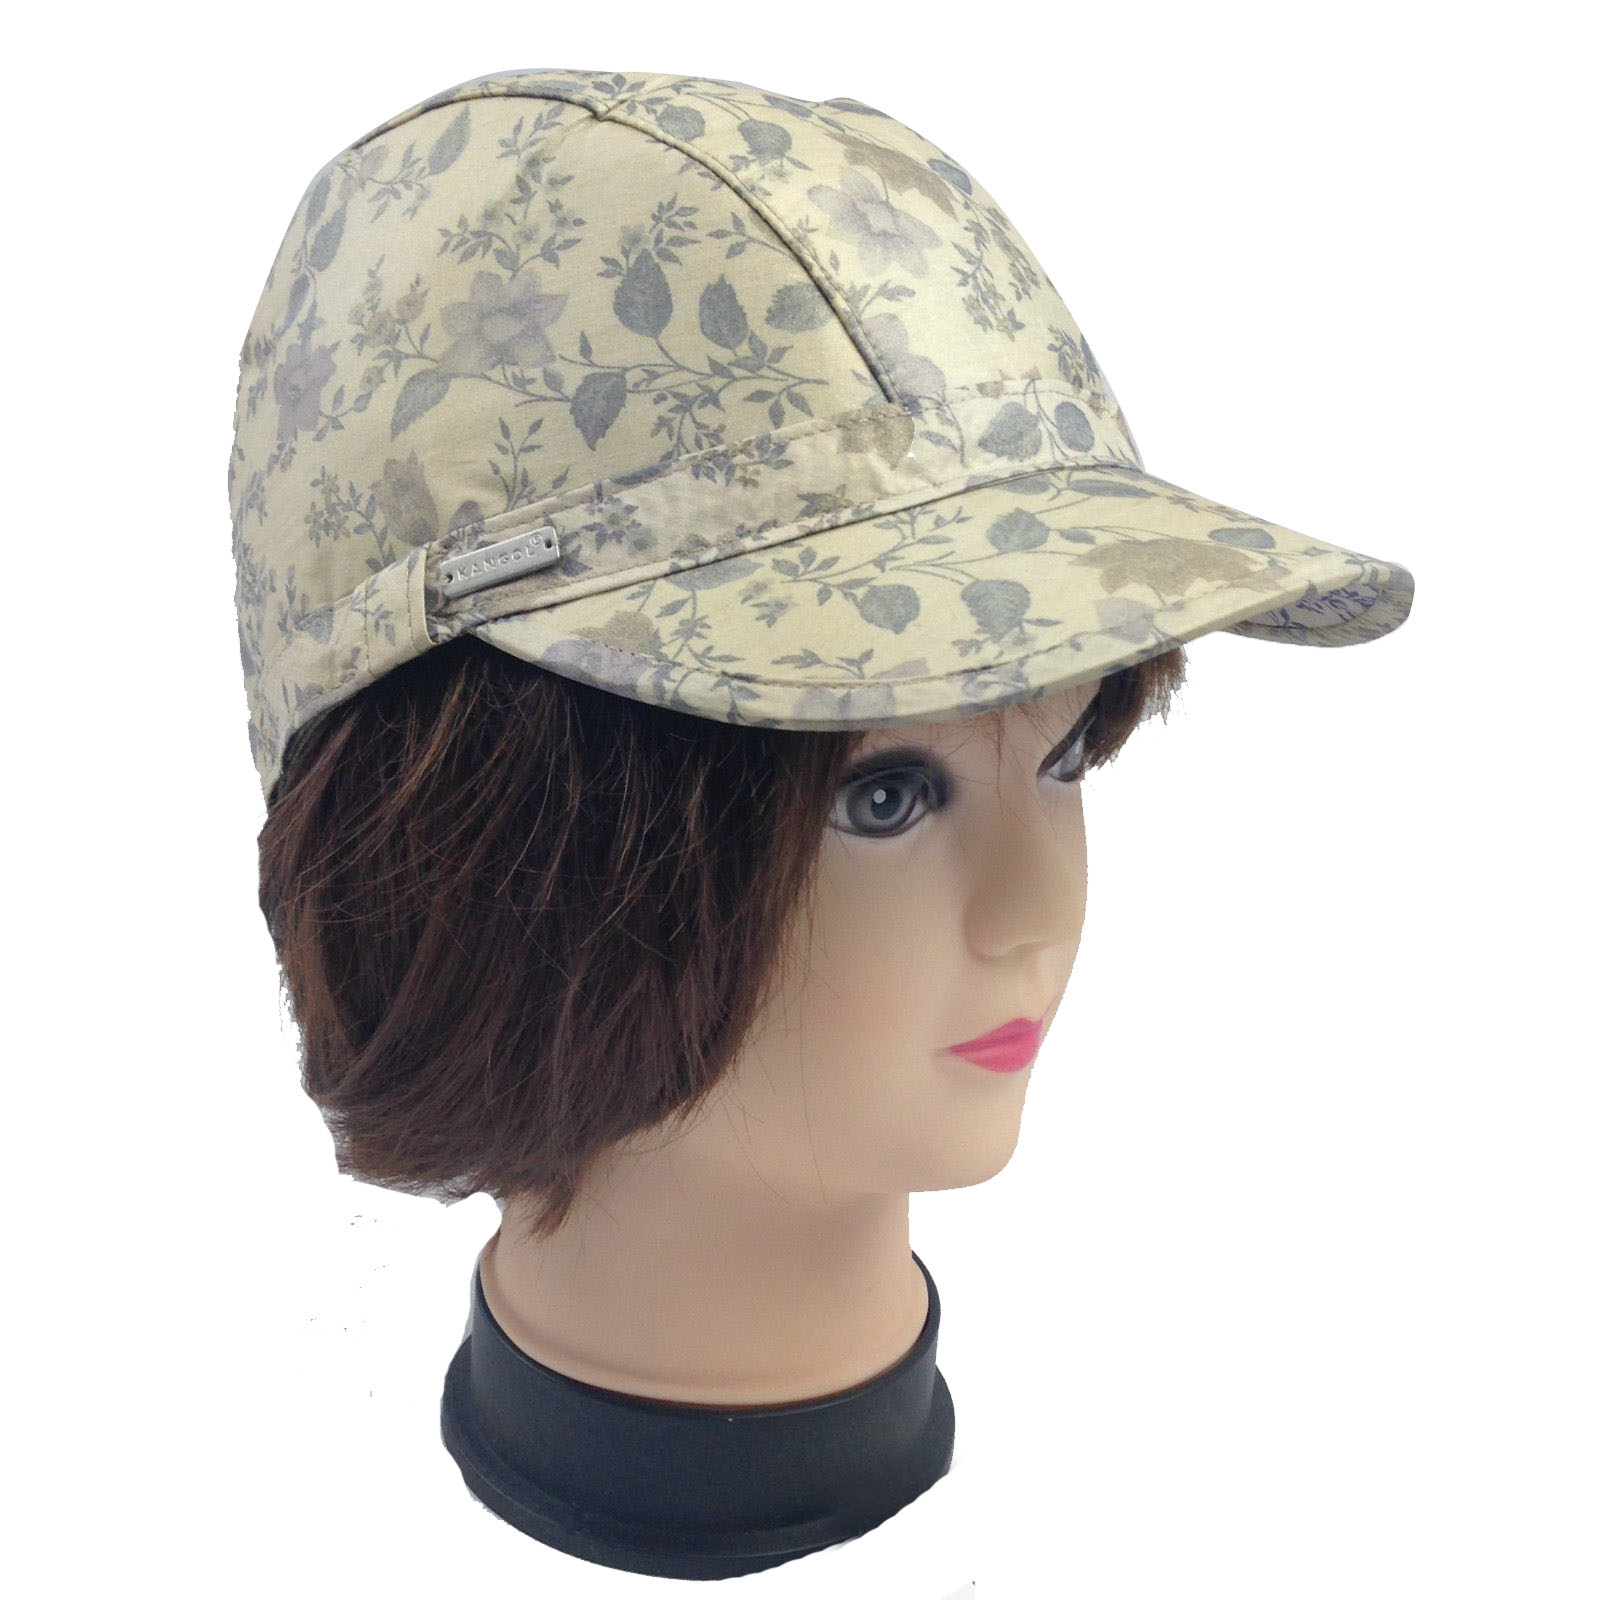 KANGOL Vintage Floral Colette Womens Hat MADE IN ITALY Quality ... 47538bc8fd9